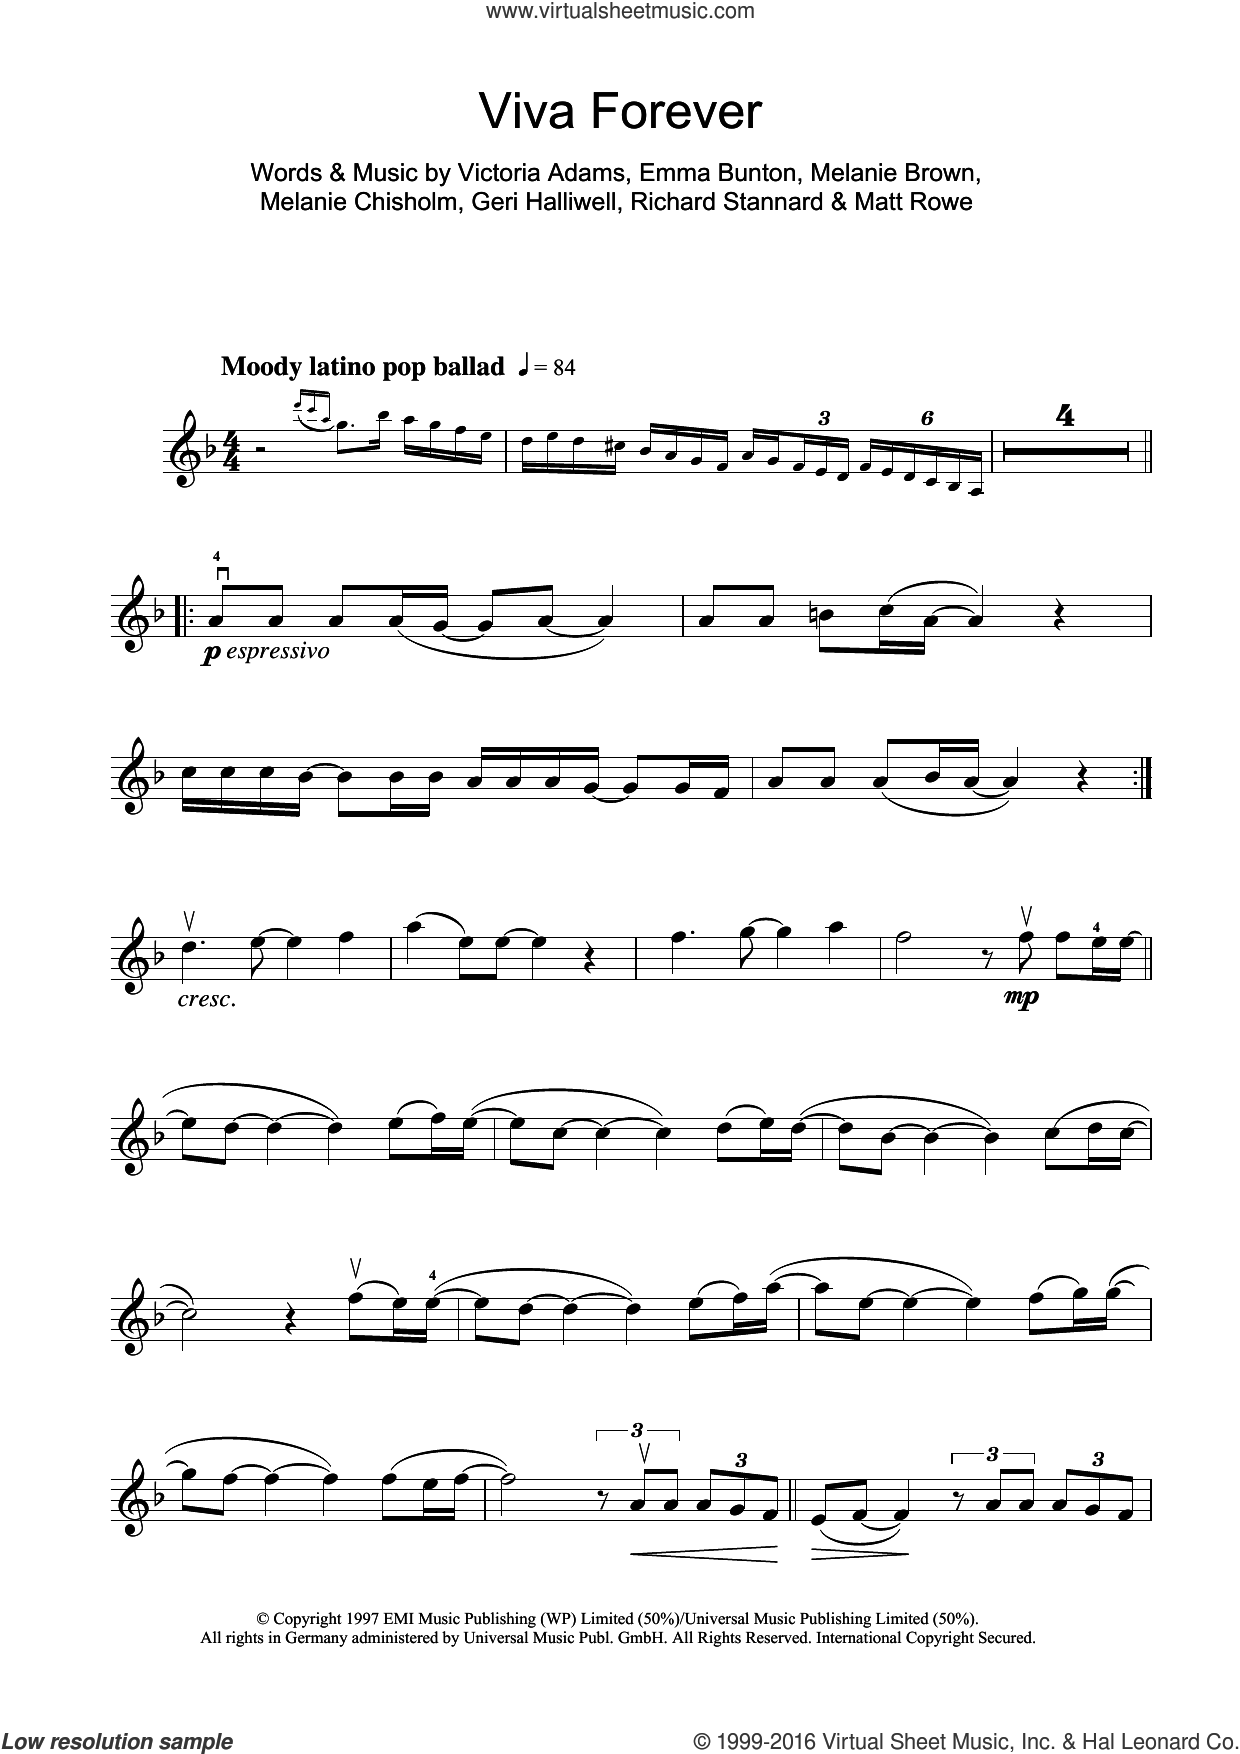 Viva Forever sheet music for violin solo by Victoria Adams, Spice Girls, Chisholm Melanie, Emma Bunton, Geri Halliwell and Richard Stannard. Score Image Preview.